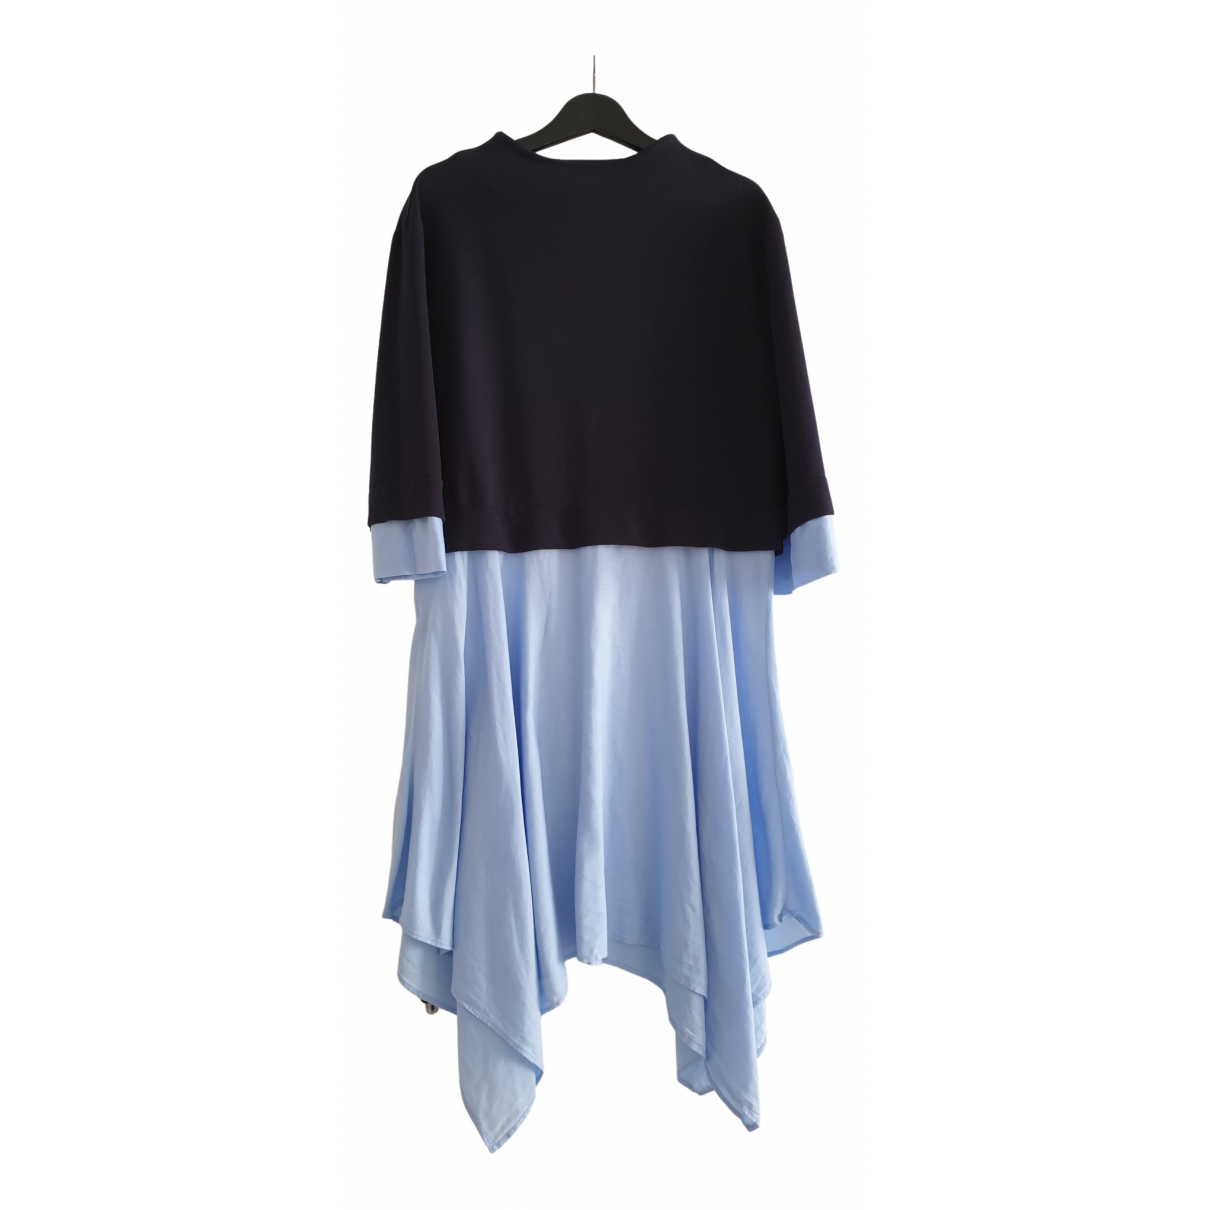 Zara N Blue Cotton dress for Women 34 FR